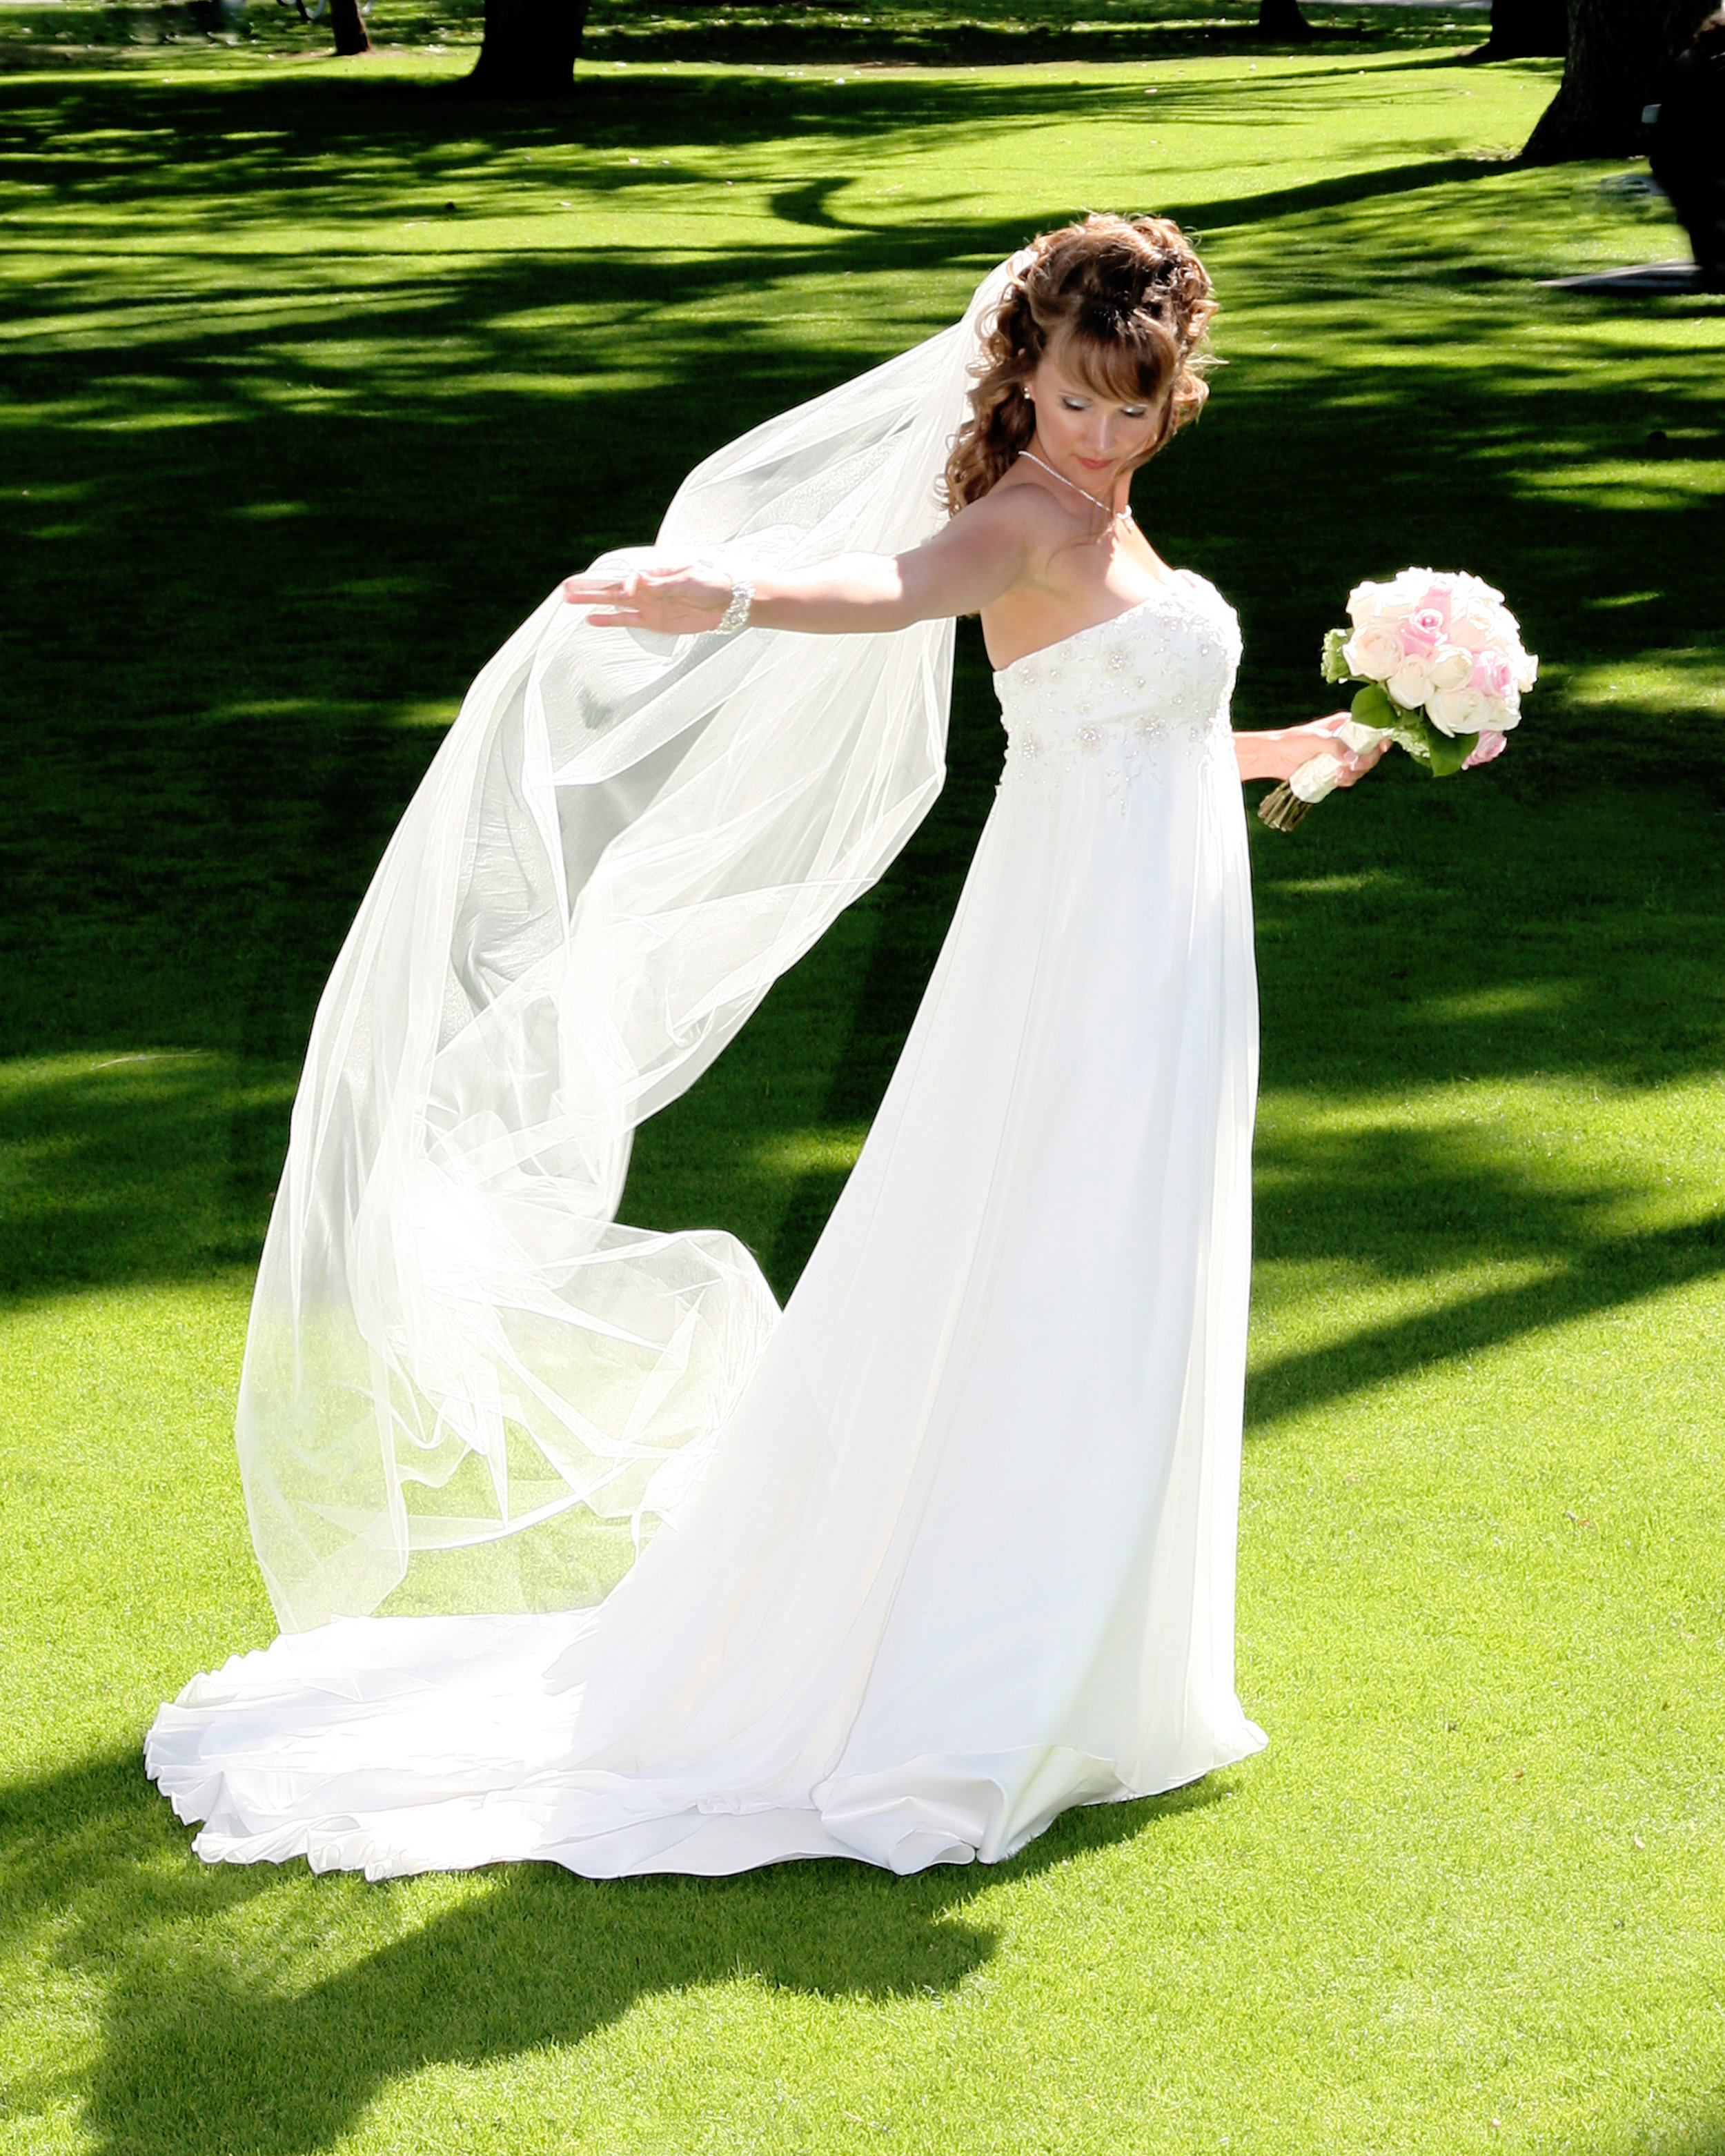 ShadowcatcherGalleryOne_SanDiegoWeddingPhotogrpaher_059.jpg